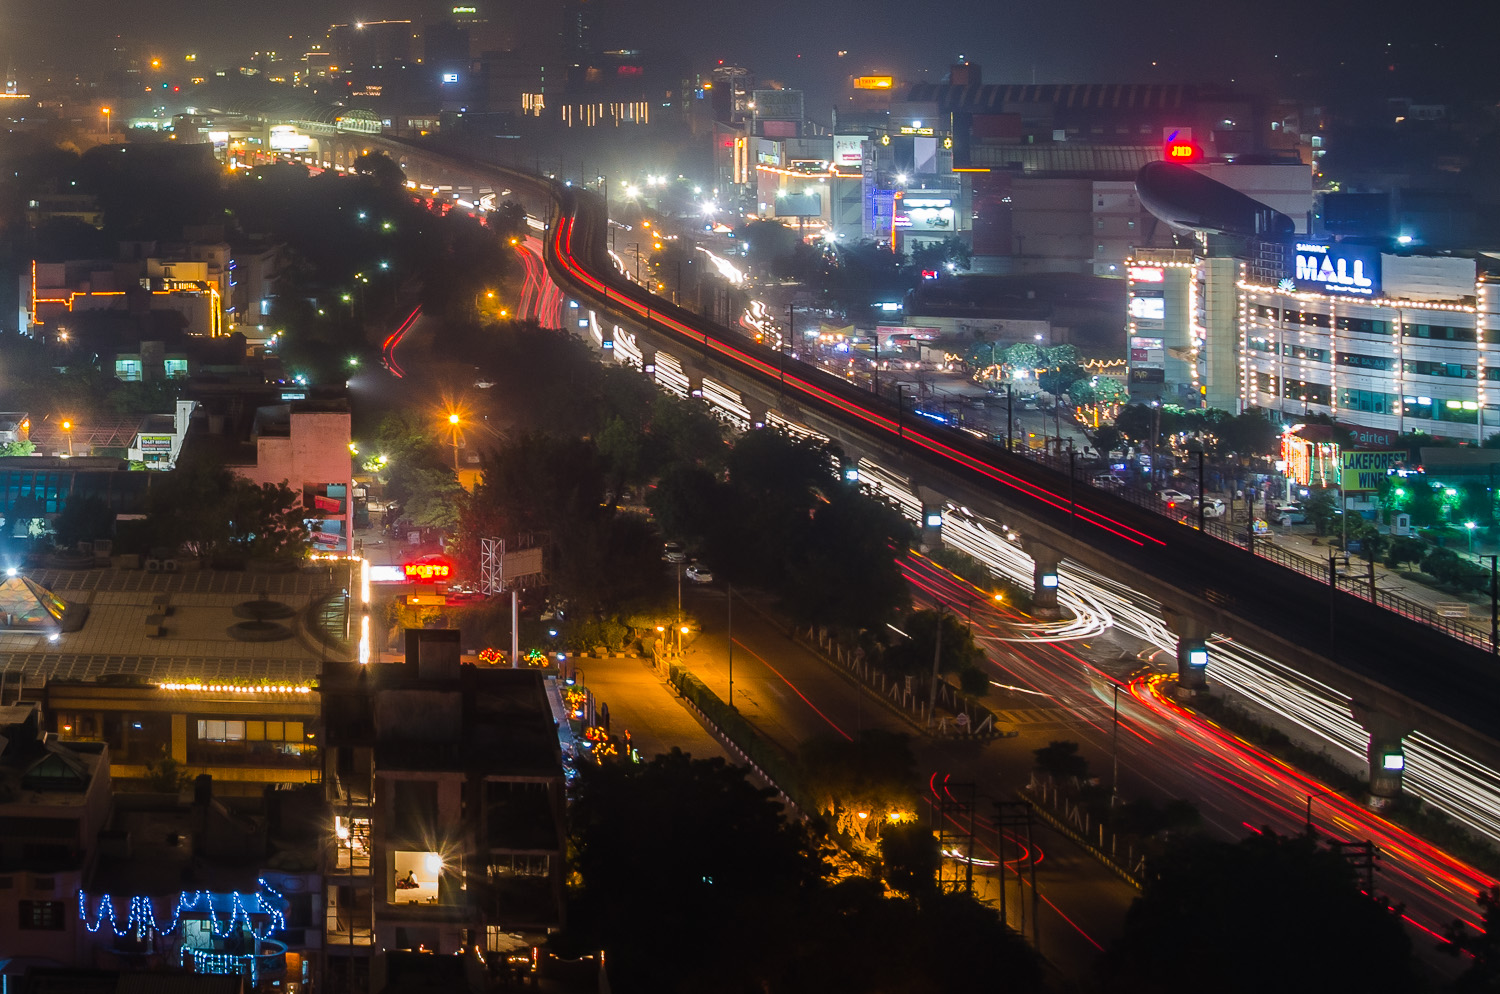 Image: This image of the Gurgaon Metro was taken in the night on one of the busiest streets of the c...